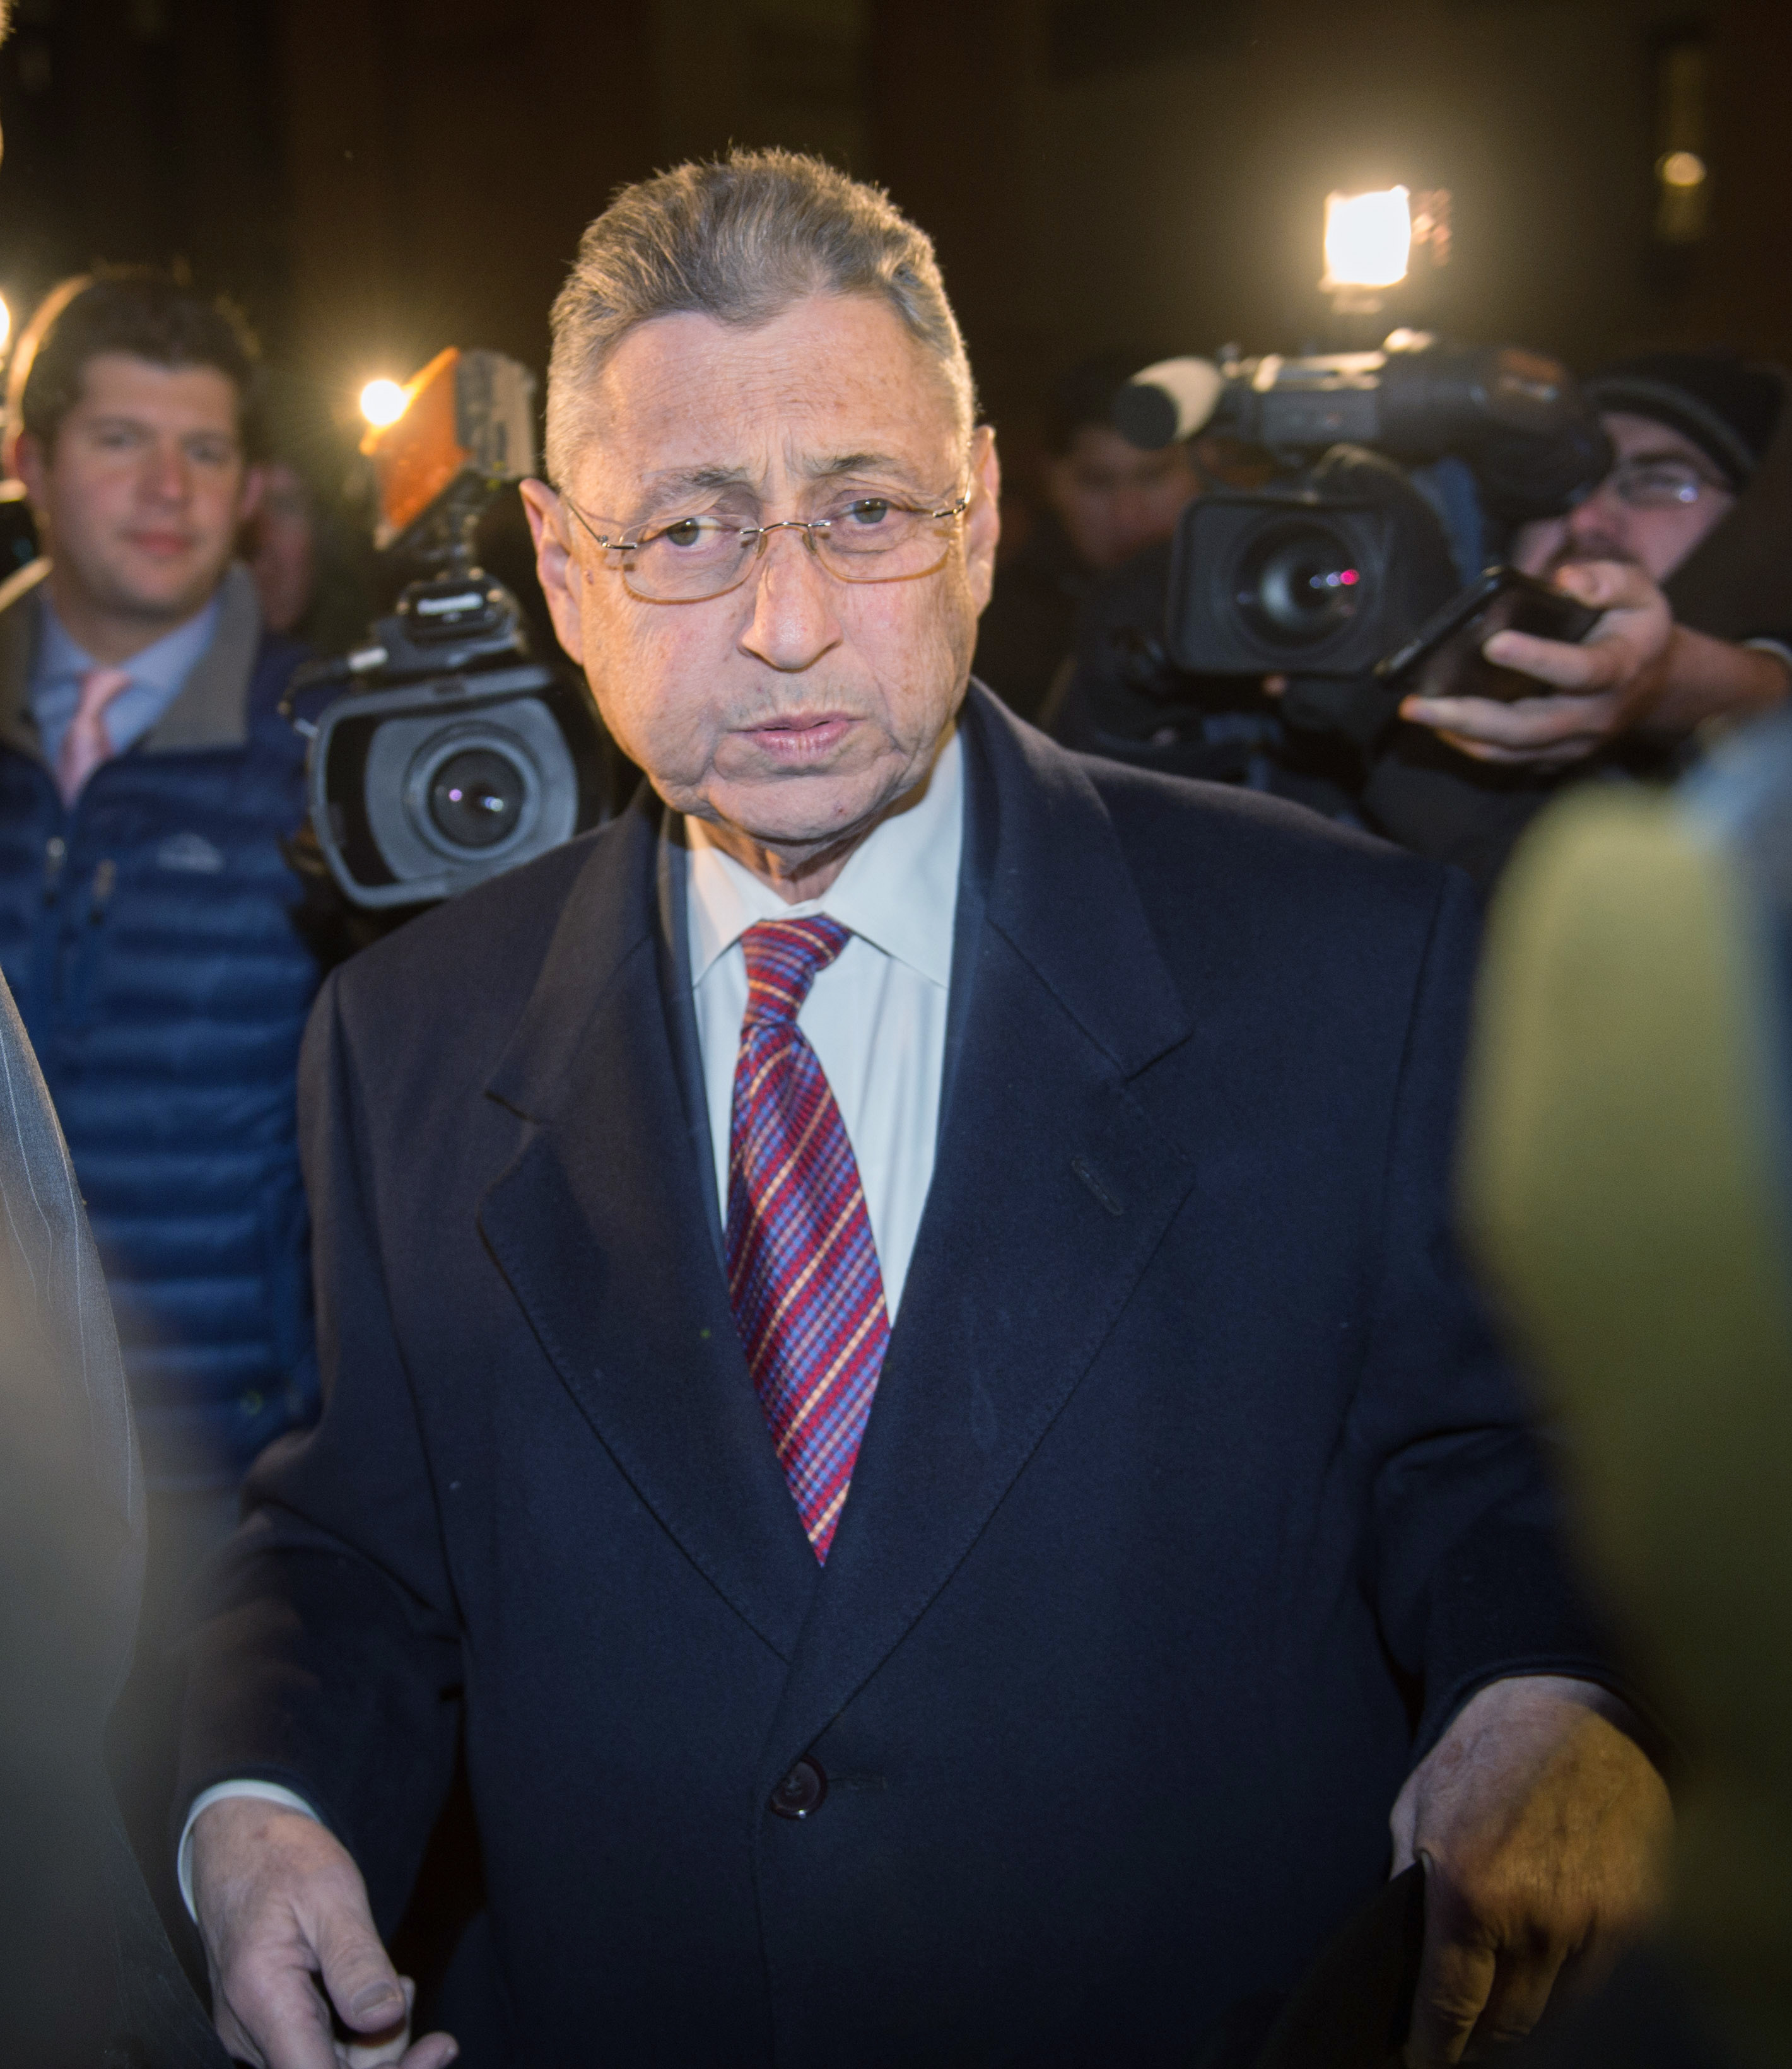 Former New York Assembly Speaker Sheldon Silver exits Manhattan federal court following his conviction on corruption charges in November 2015, in New York.